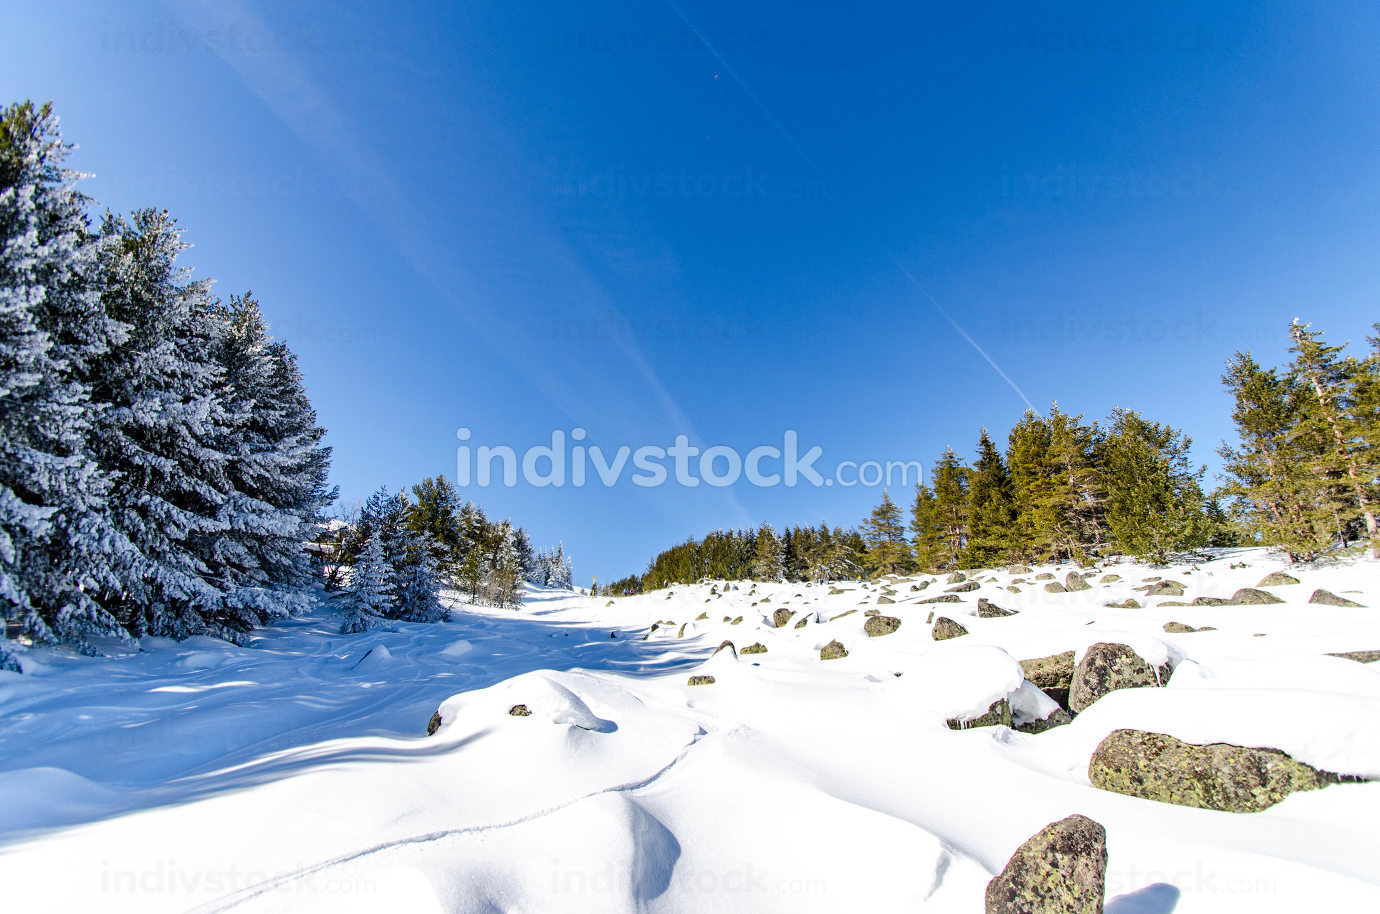 Snowy winter in the mountain, snow-covered trees